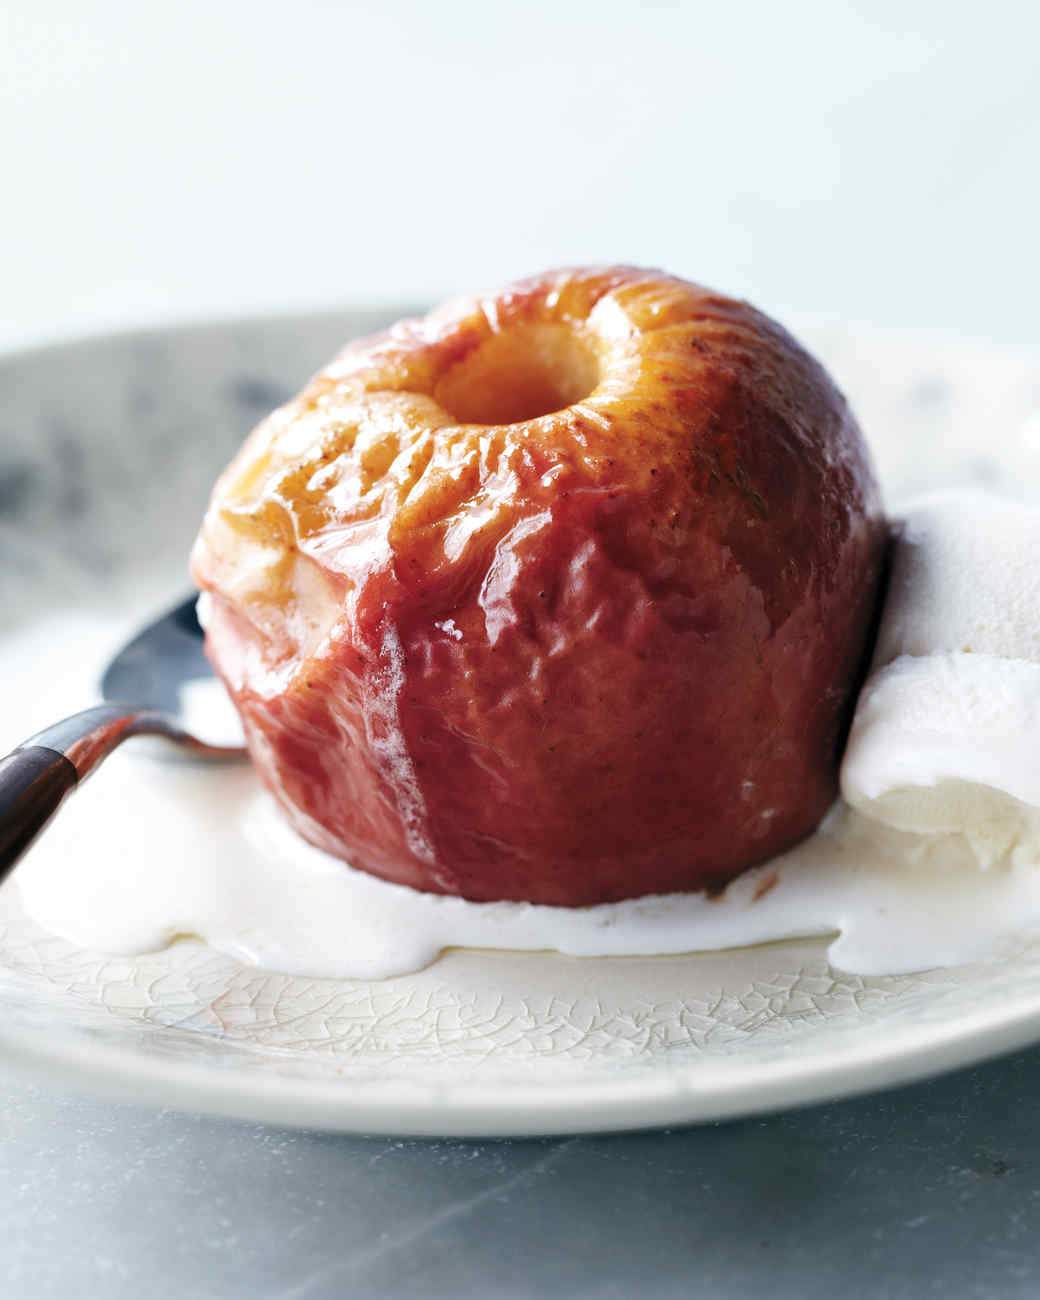 Roasted Apples with Ice Cream